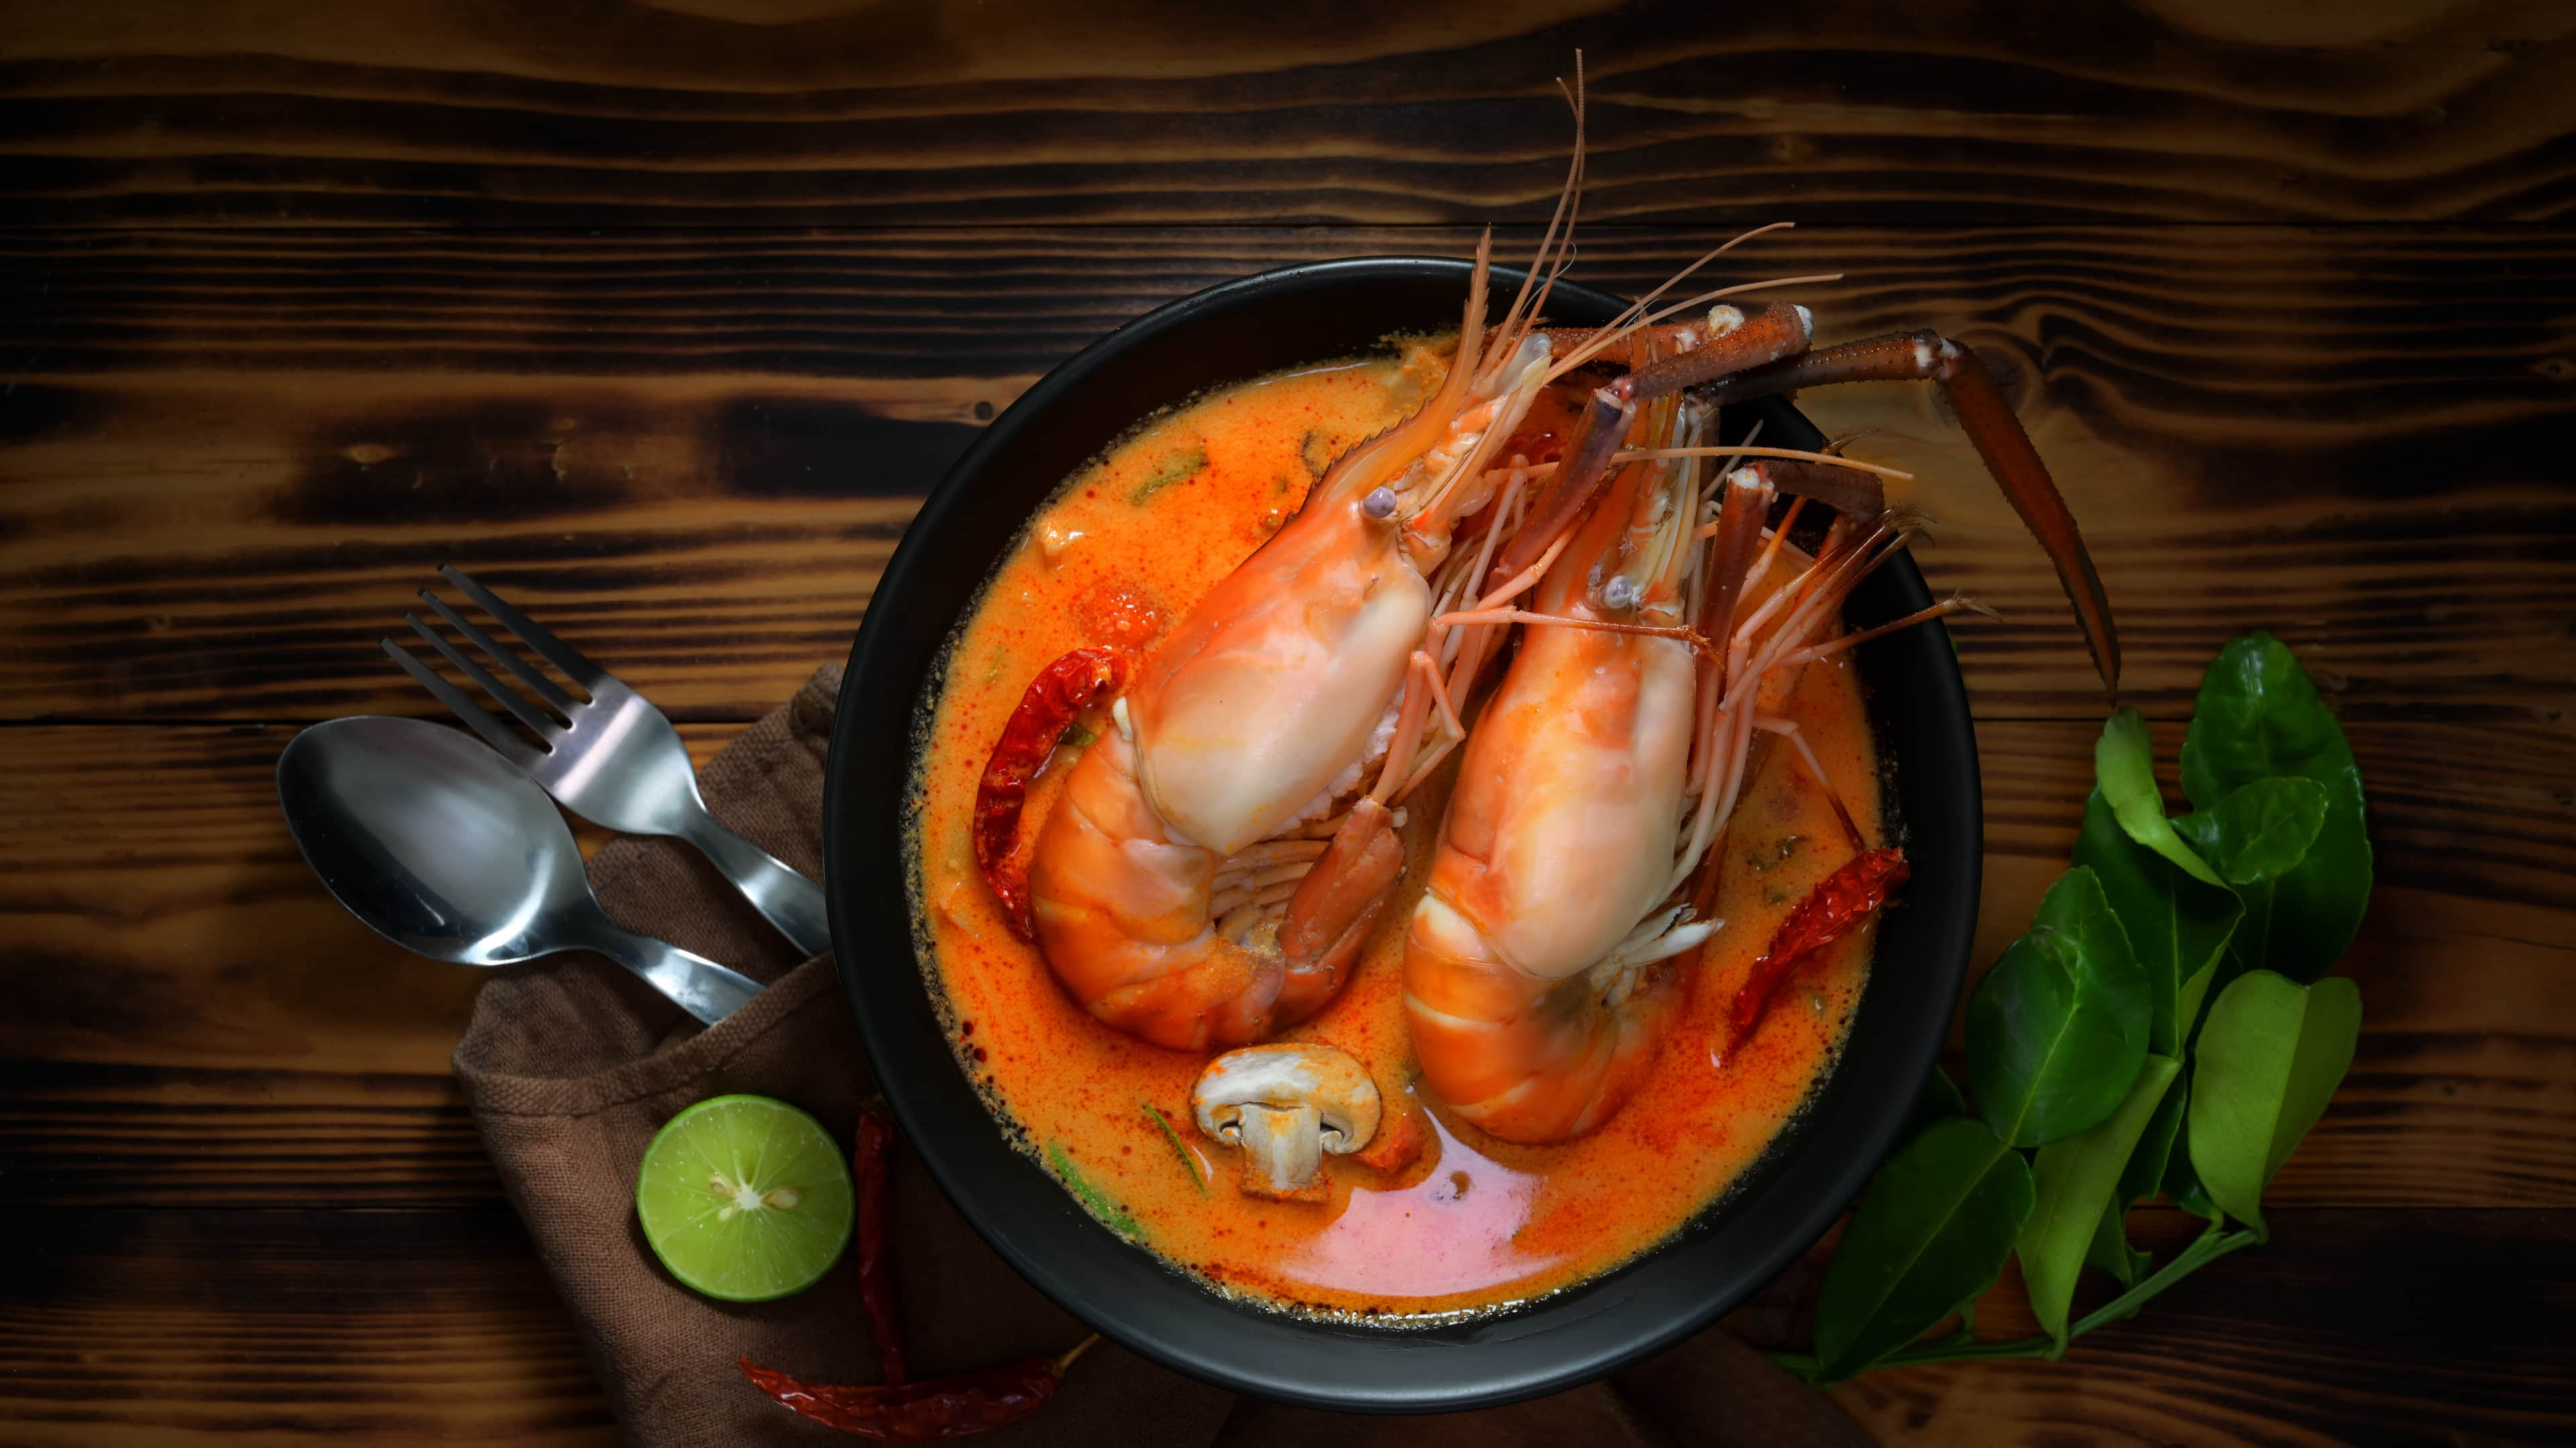 Top view of Tom yum goong with prawns, spicy soup in black bowl on wooden table